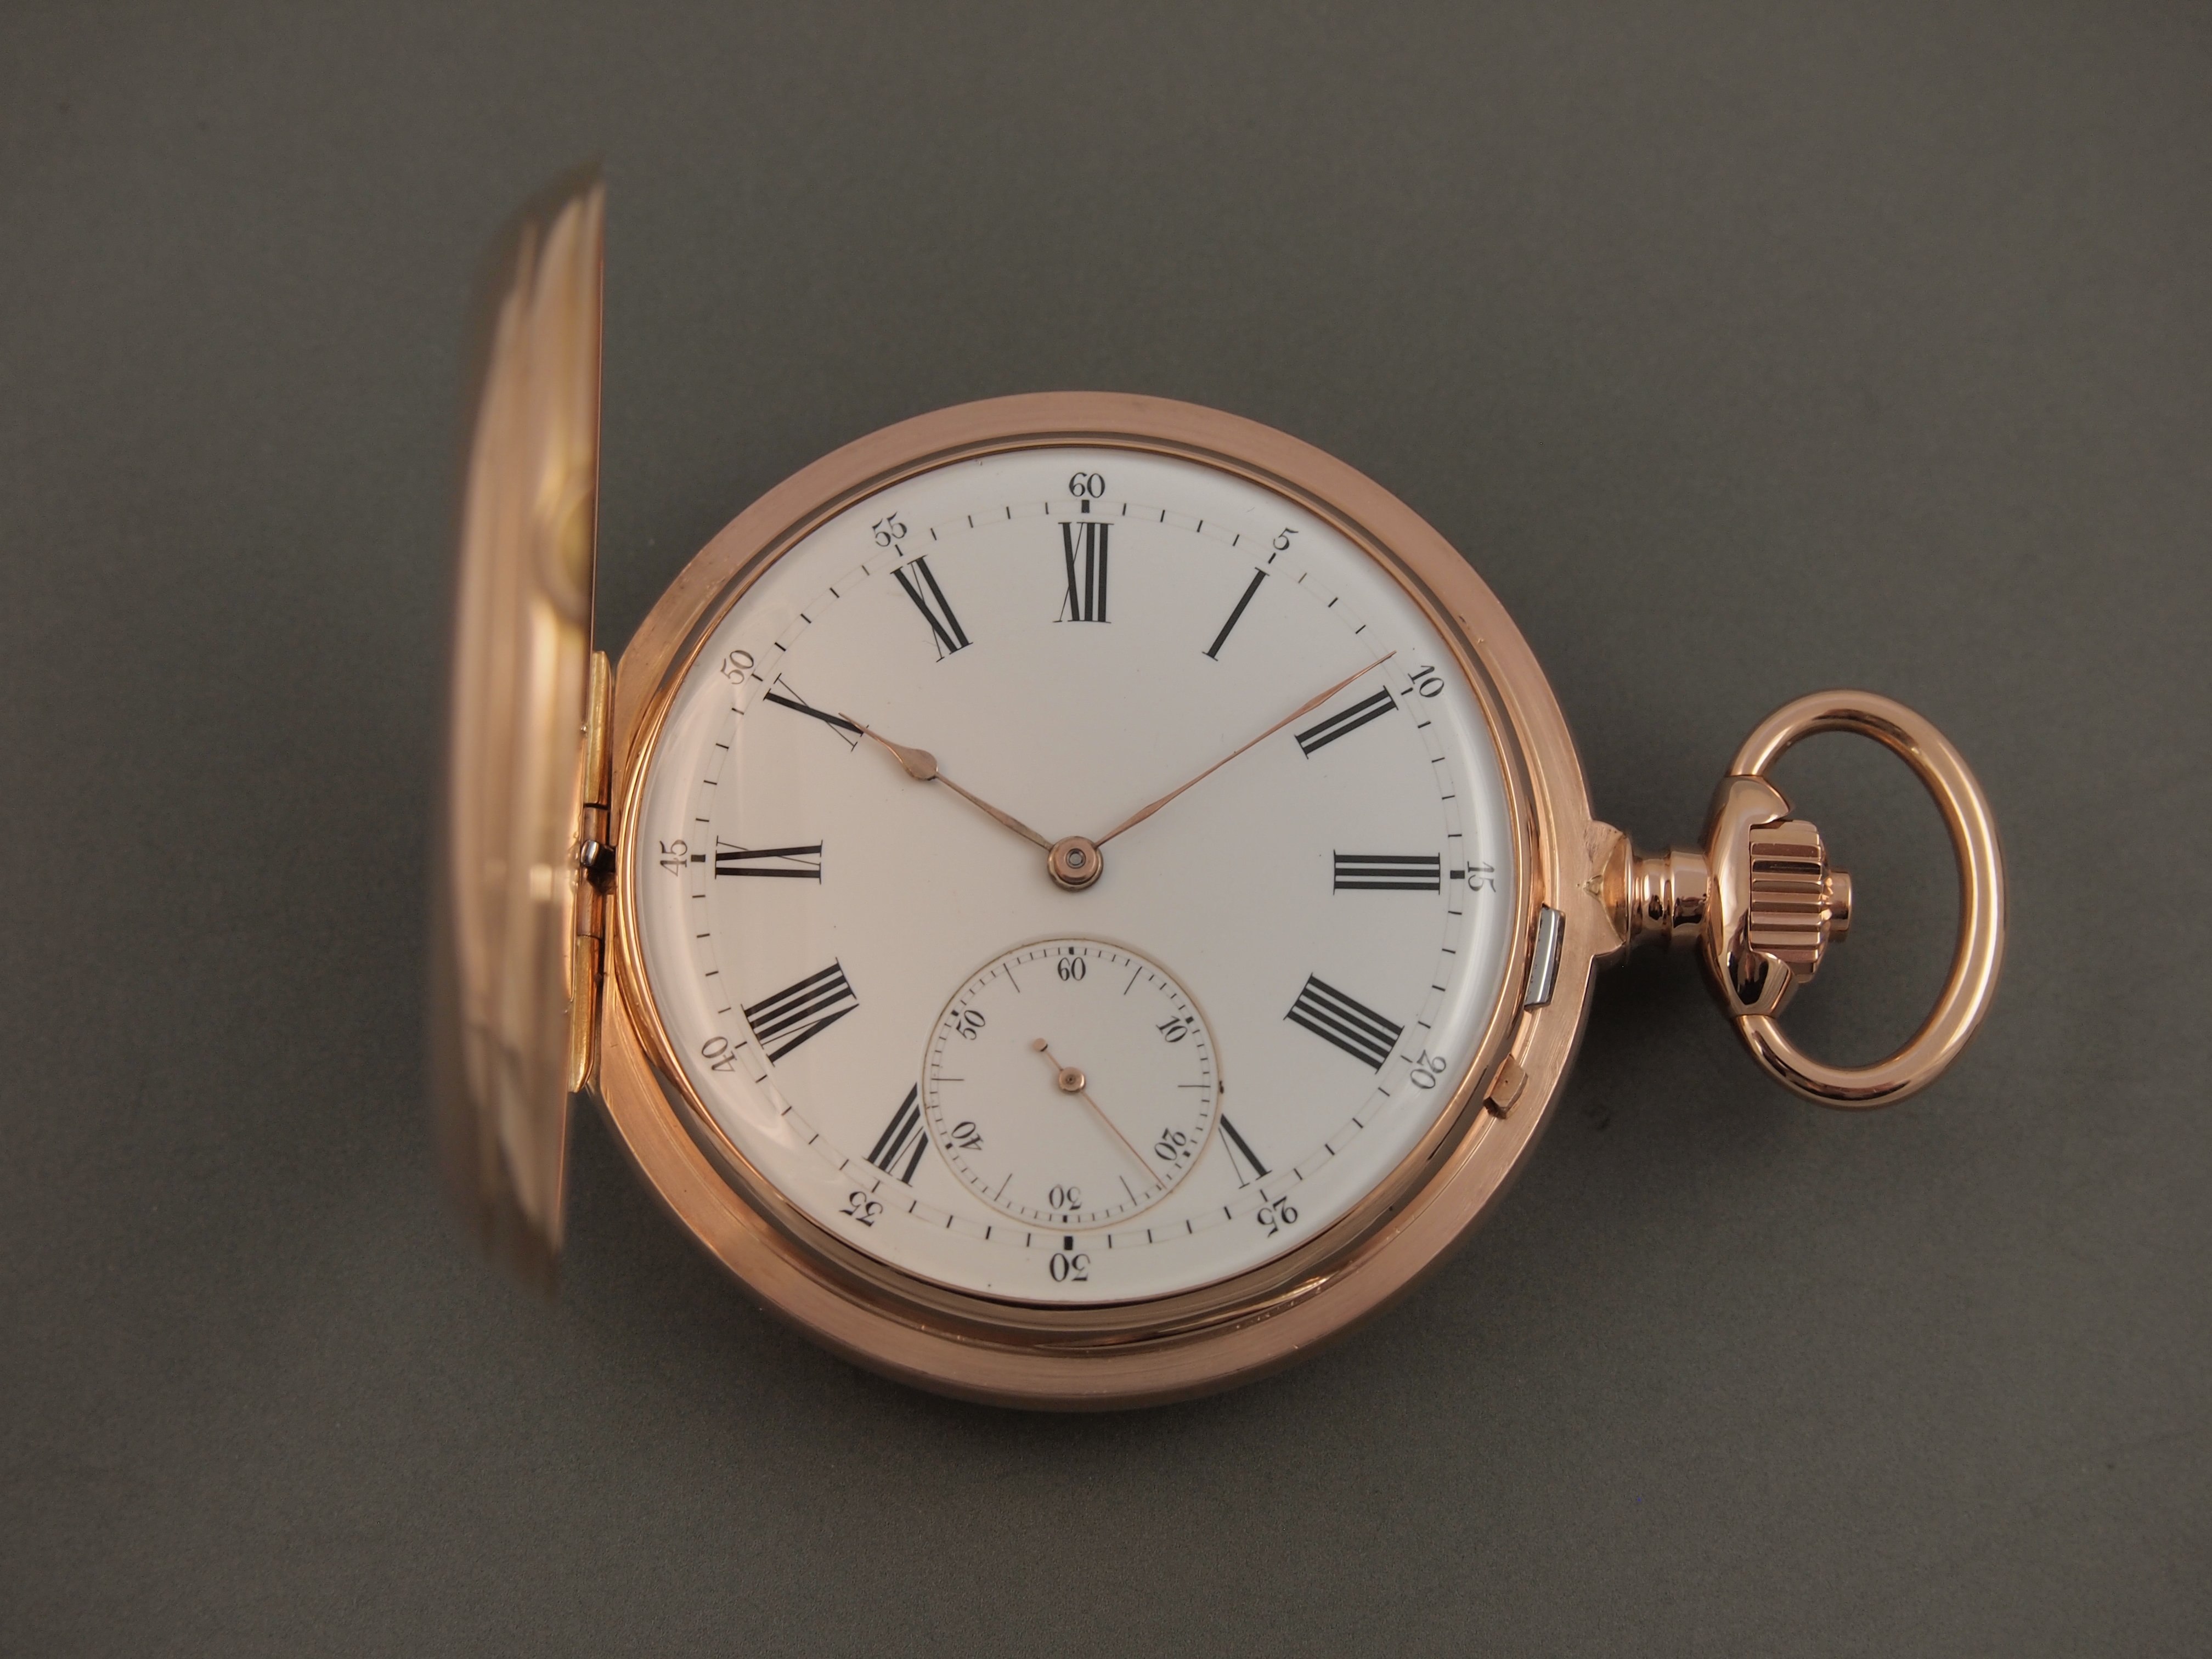 Le Roy & Fils